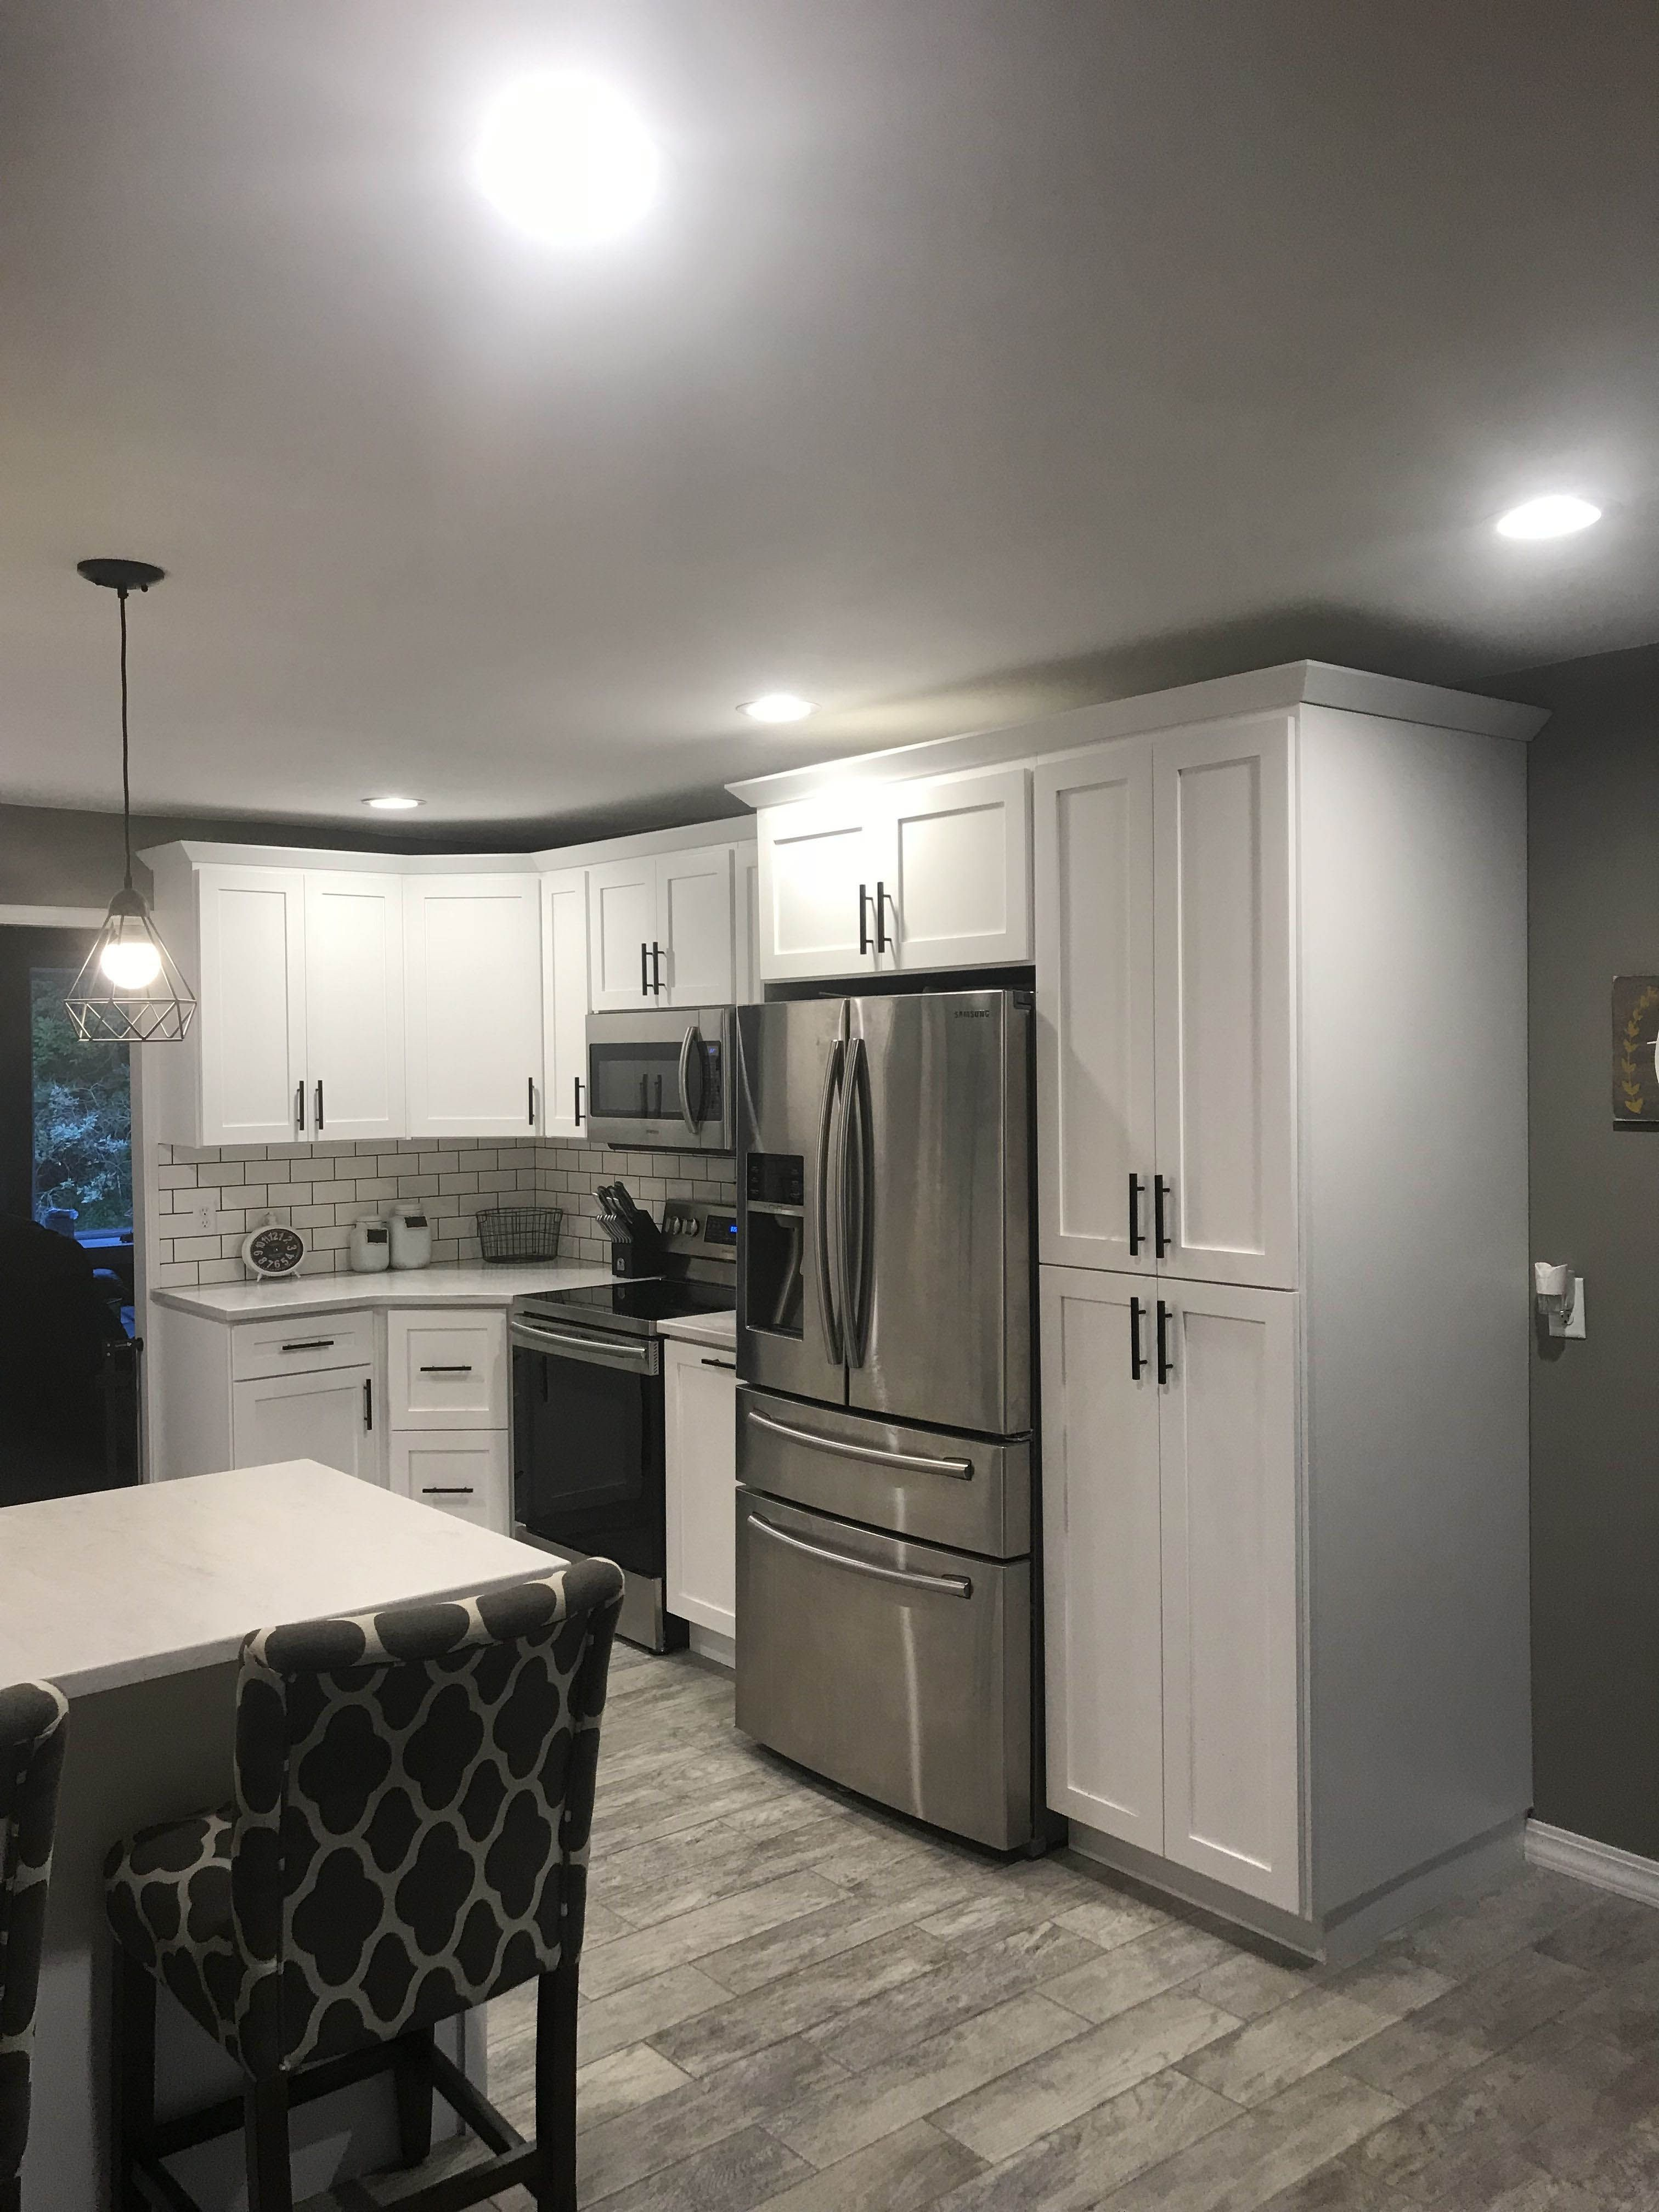 Ways To Style Gray Kitchen Cabinets In 2020 With Images White Shaker Kitchen Cabinets White Shaker Kitchen Home Remodeling